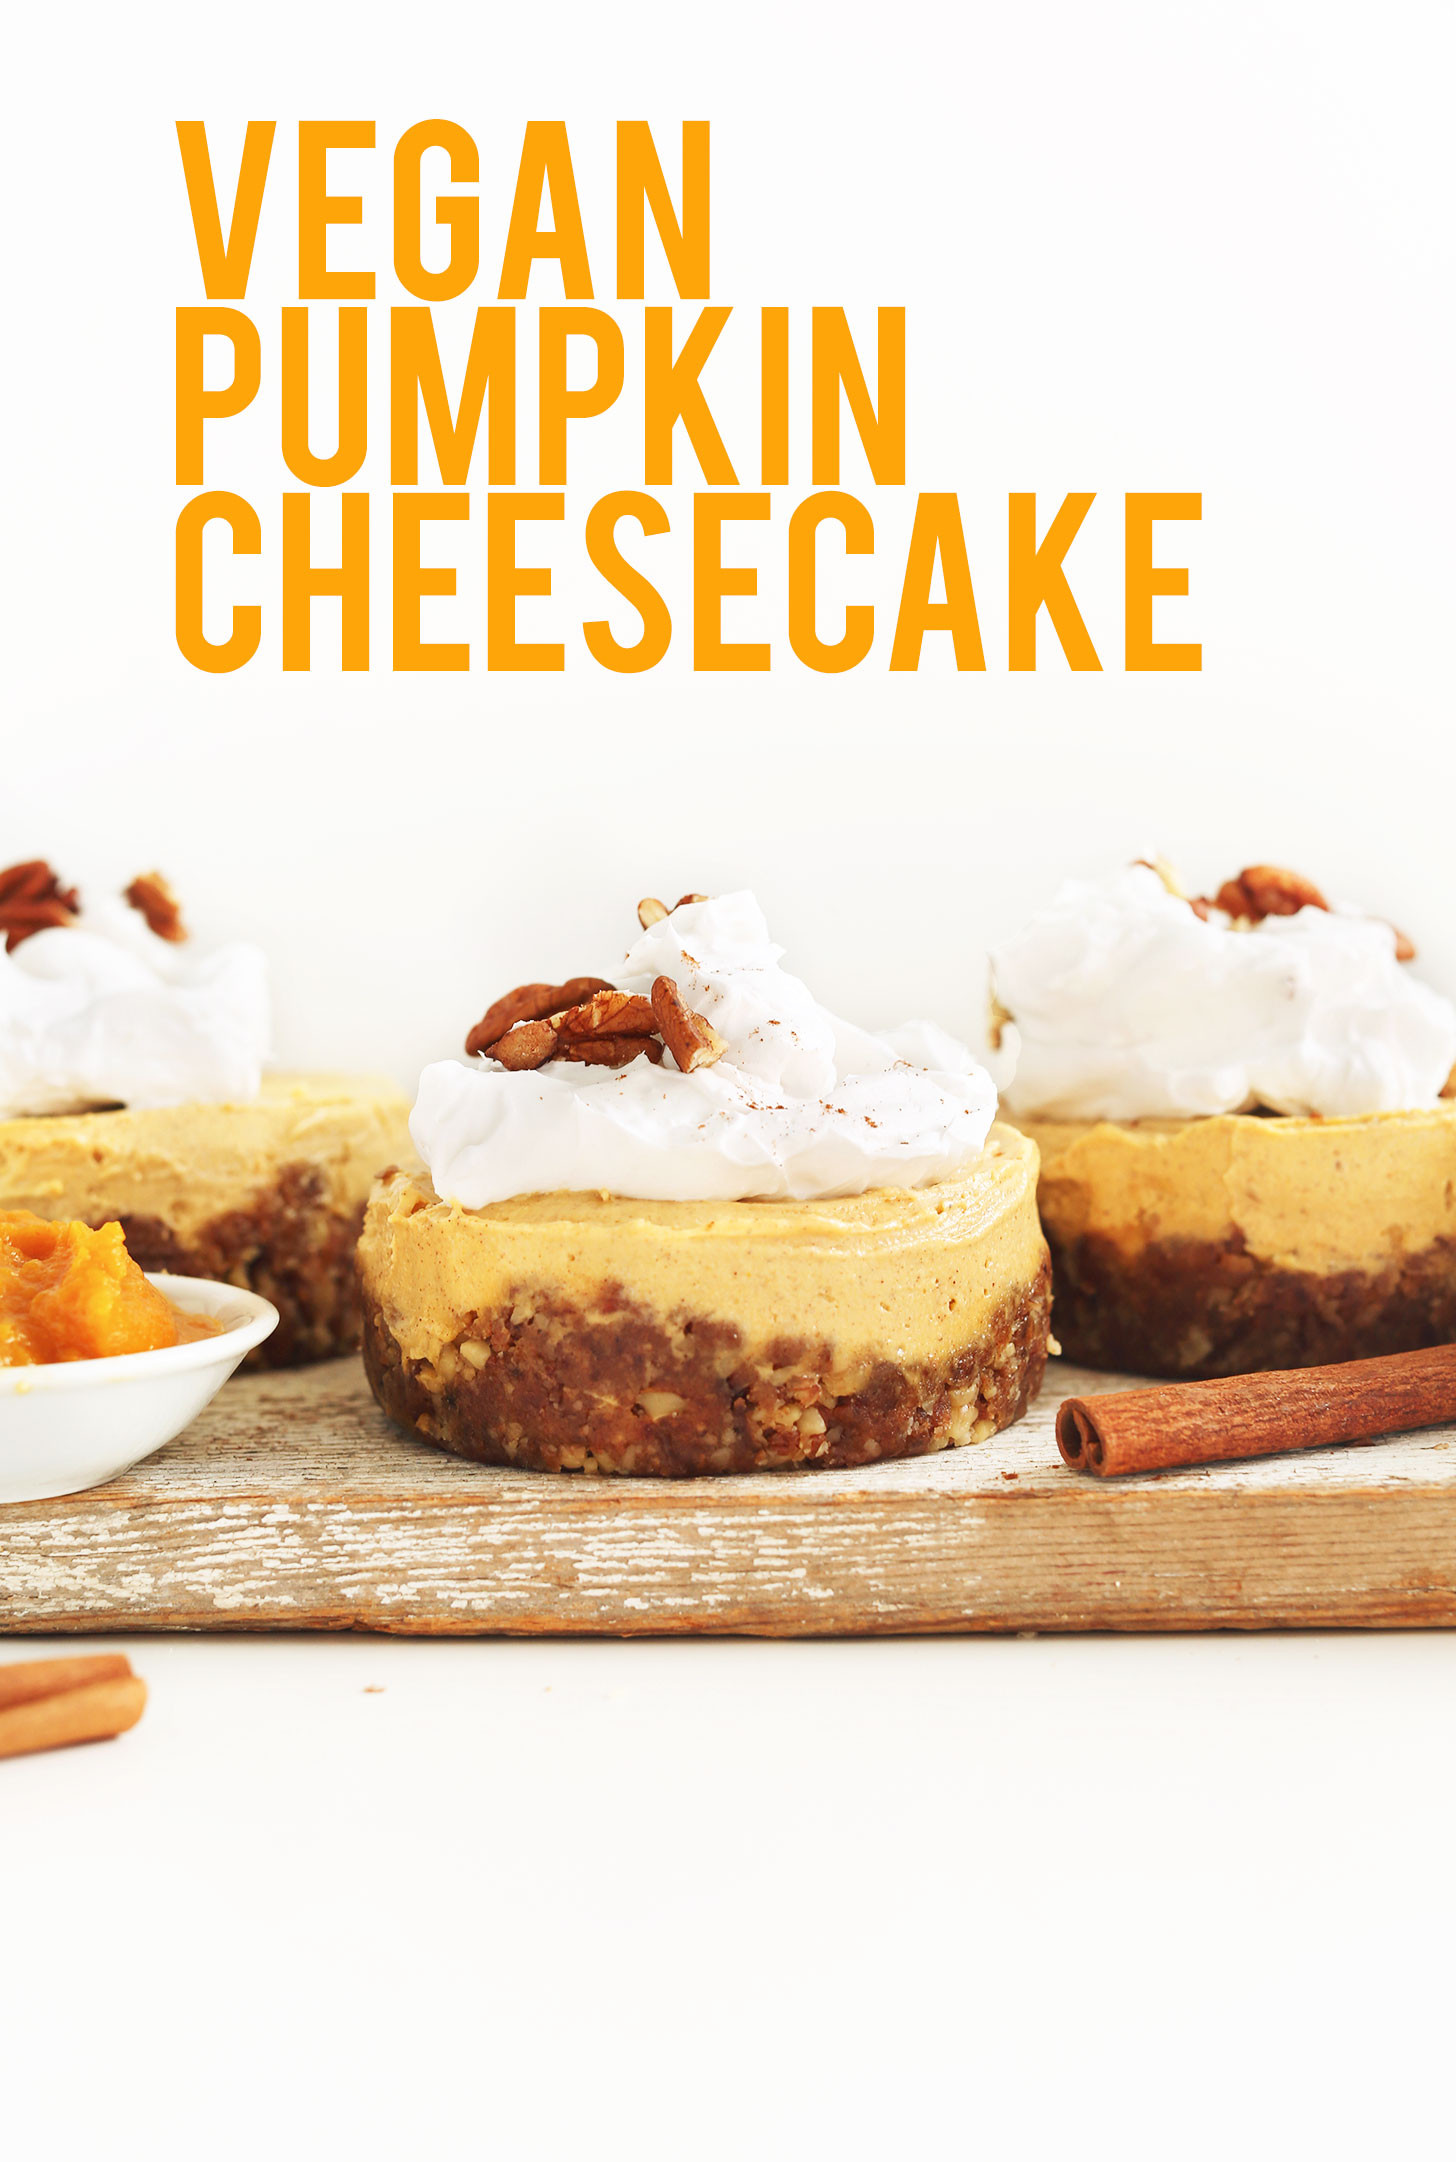 Pumpkin Recipes Vegan  Vegan Pumpkin Cheesecake